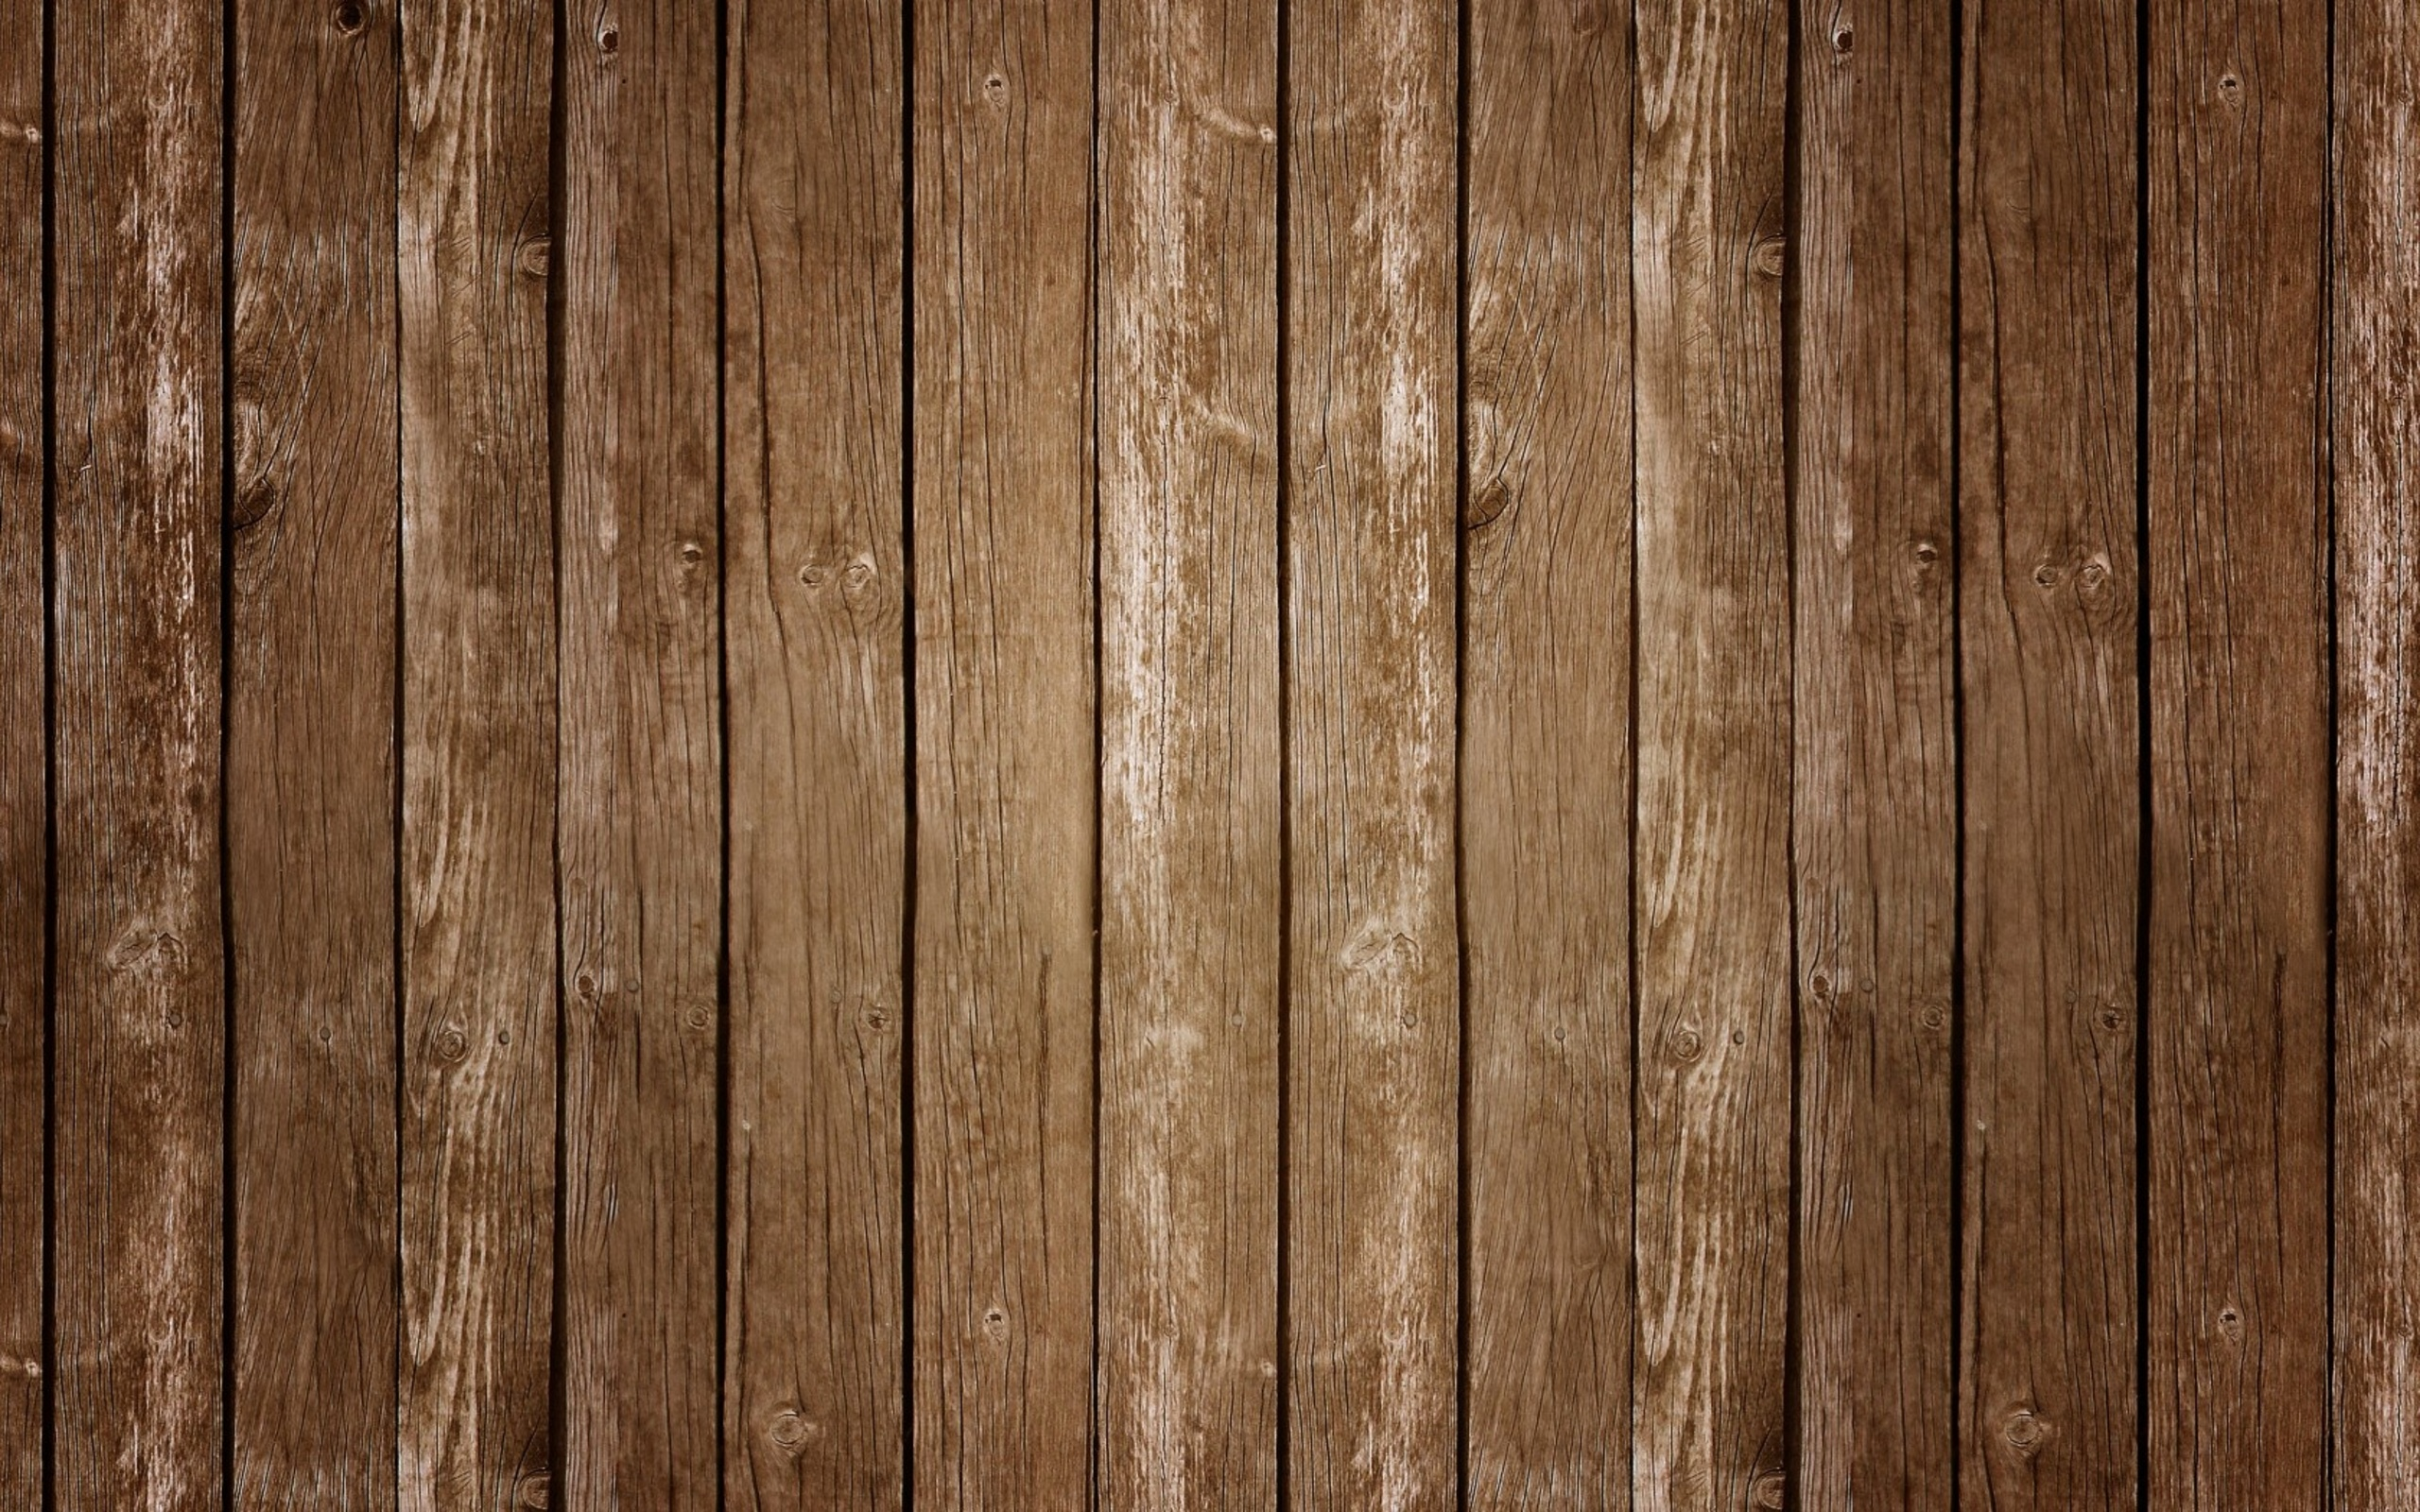 Faux Wood Wallpaper 15243 2560x1600 Px